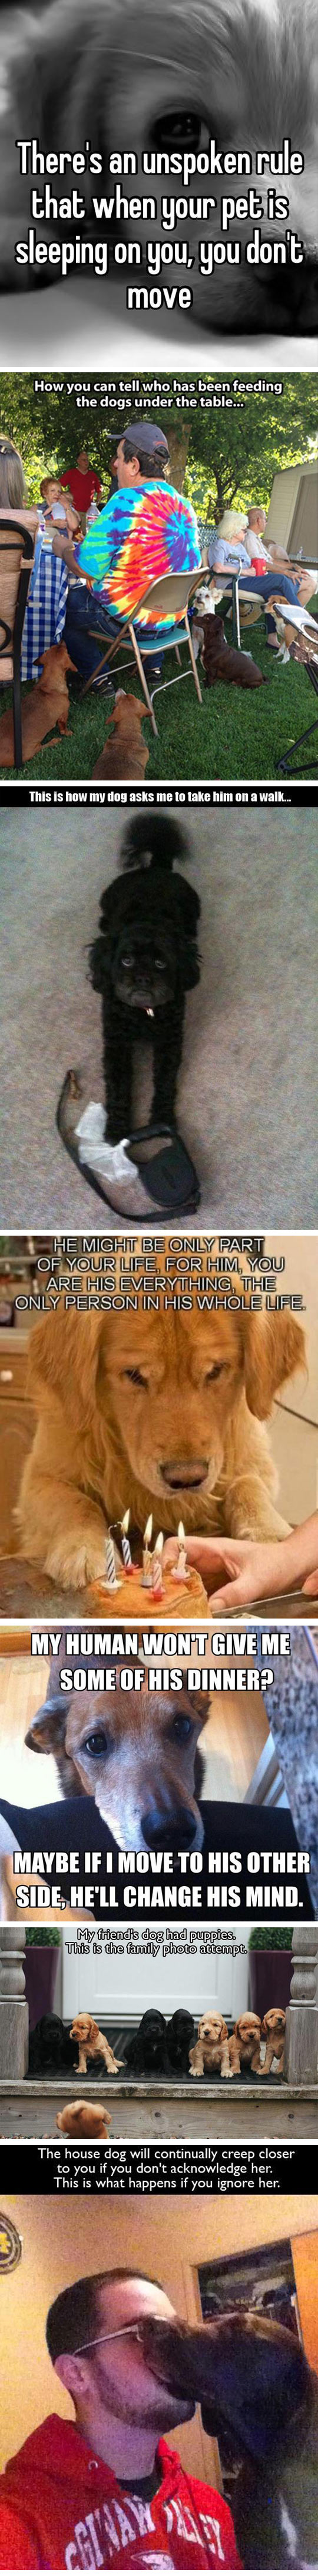 funny-dog-owners-reactions-sleeping-rule